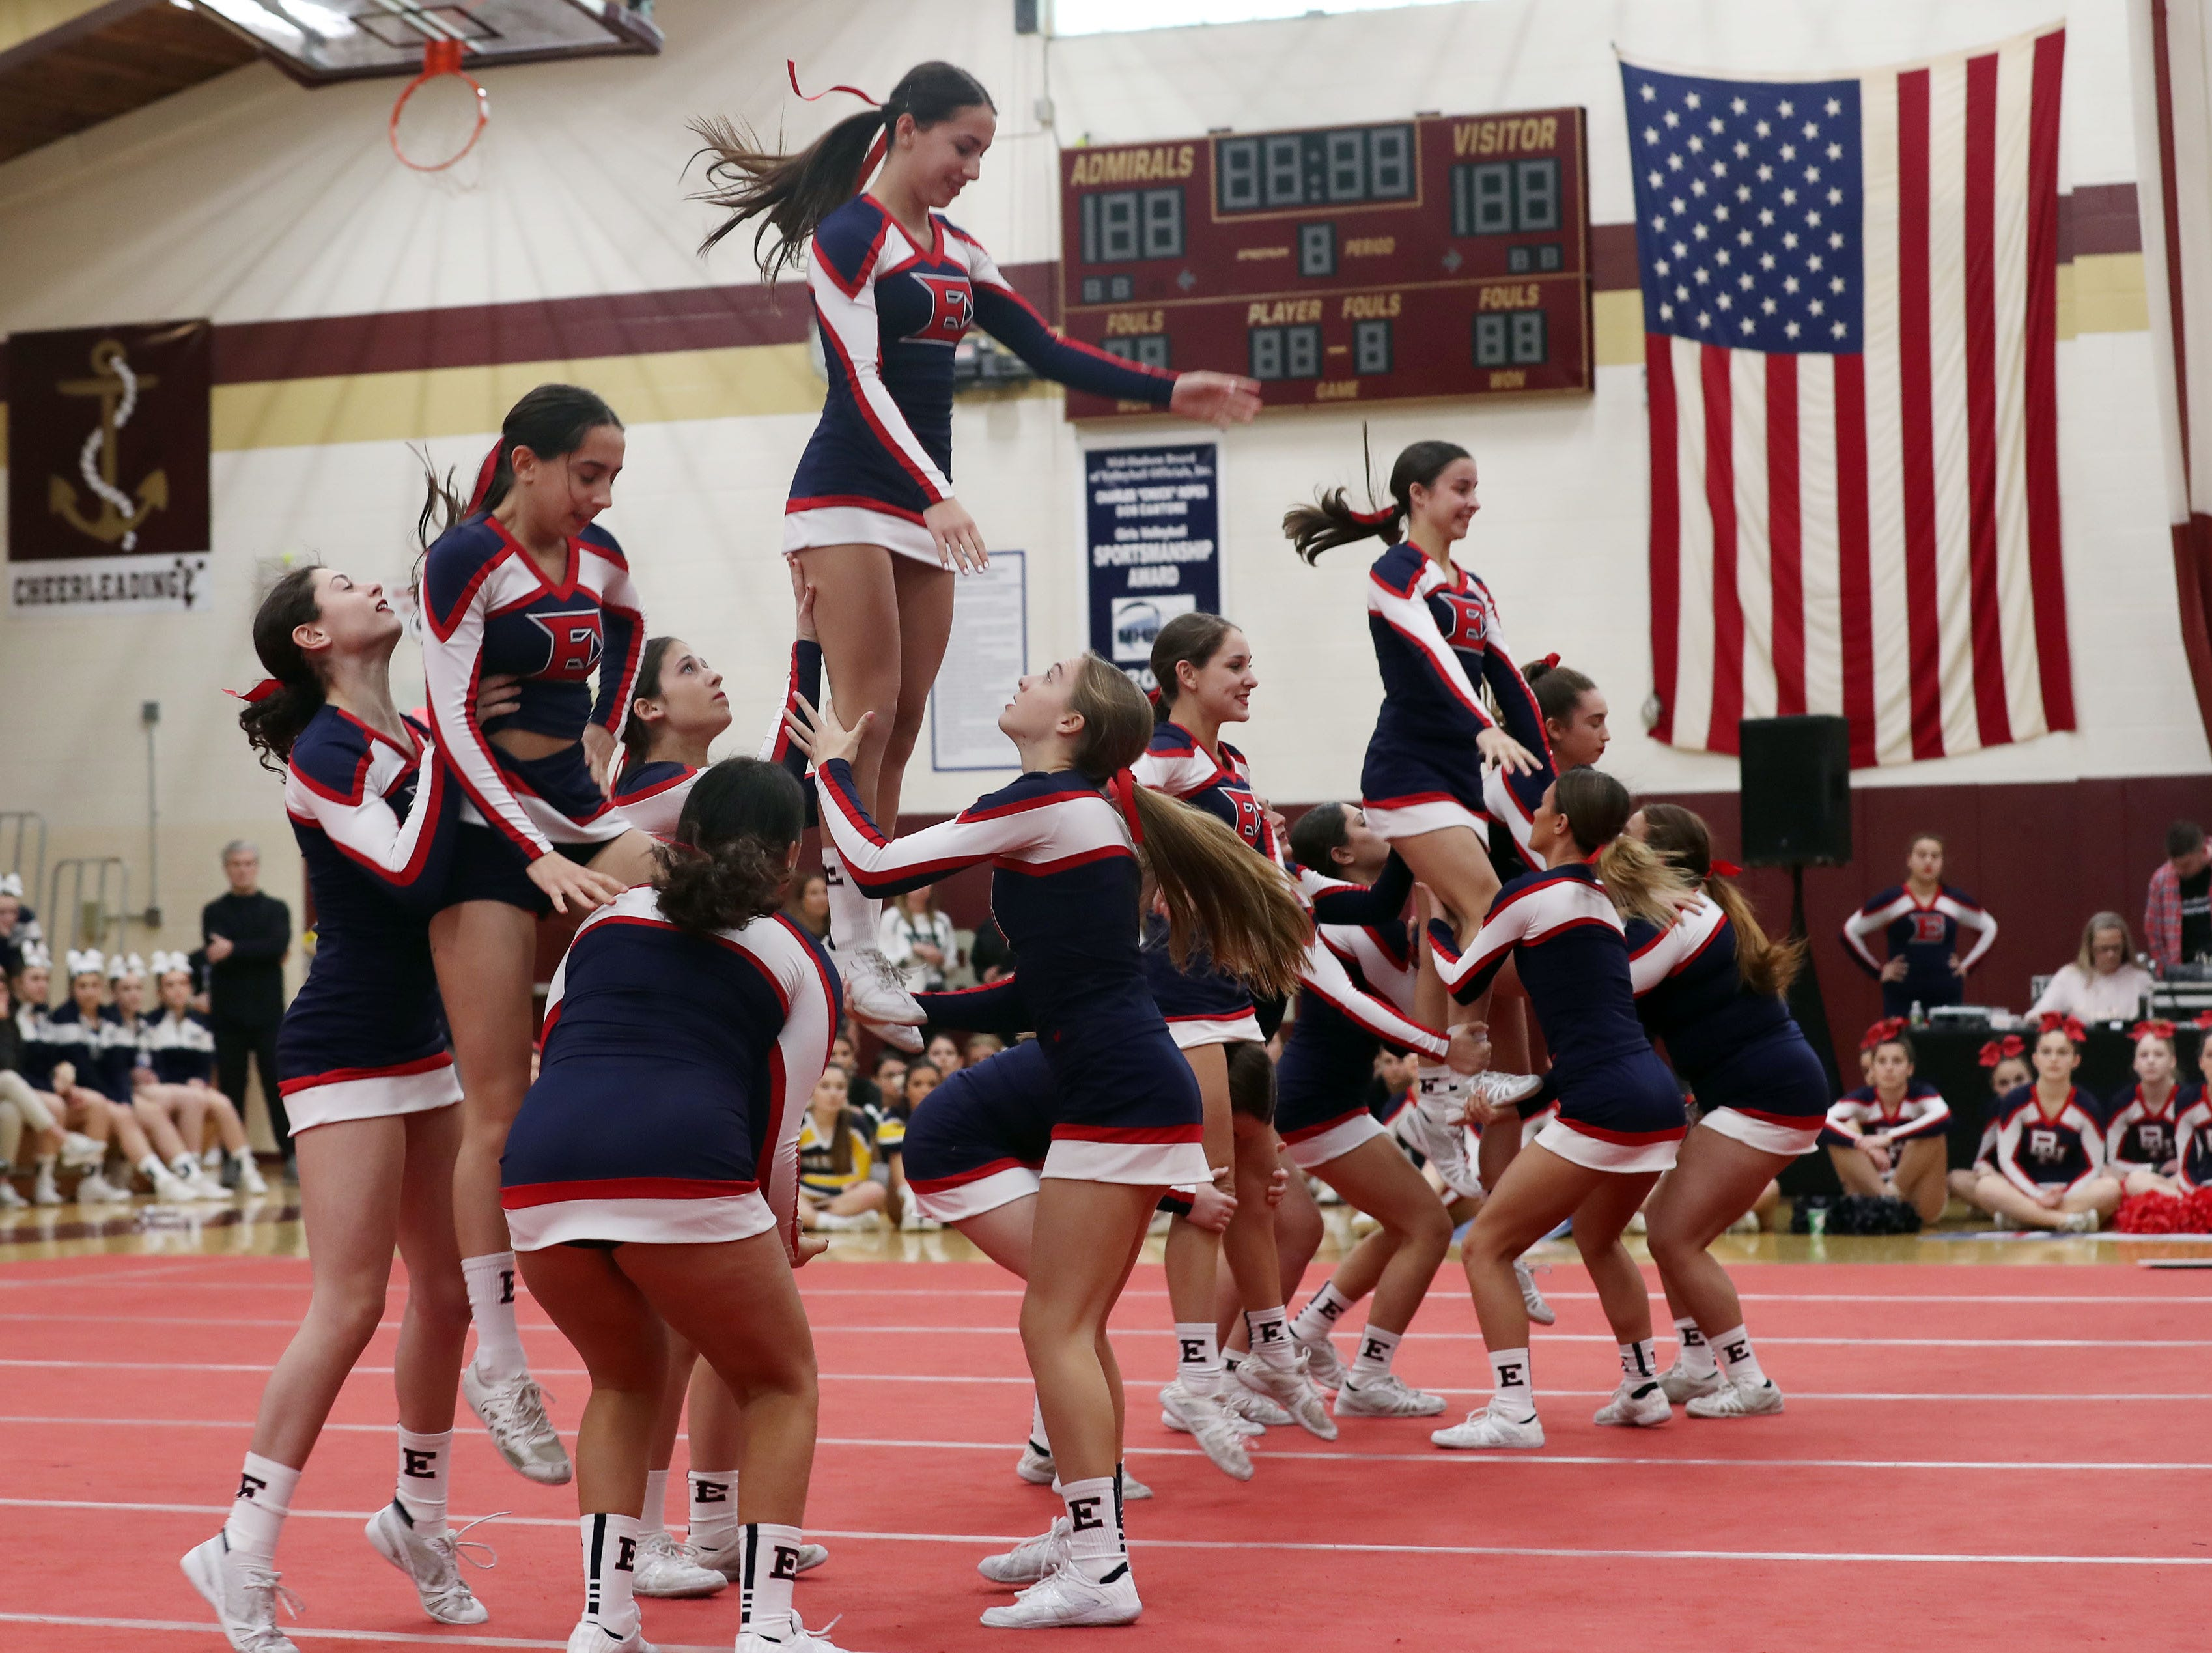 Eastchester High School competes during the Section 1 cheerleading championships at Arlington High School in Freedom Plains Feb. 16, 2019.